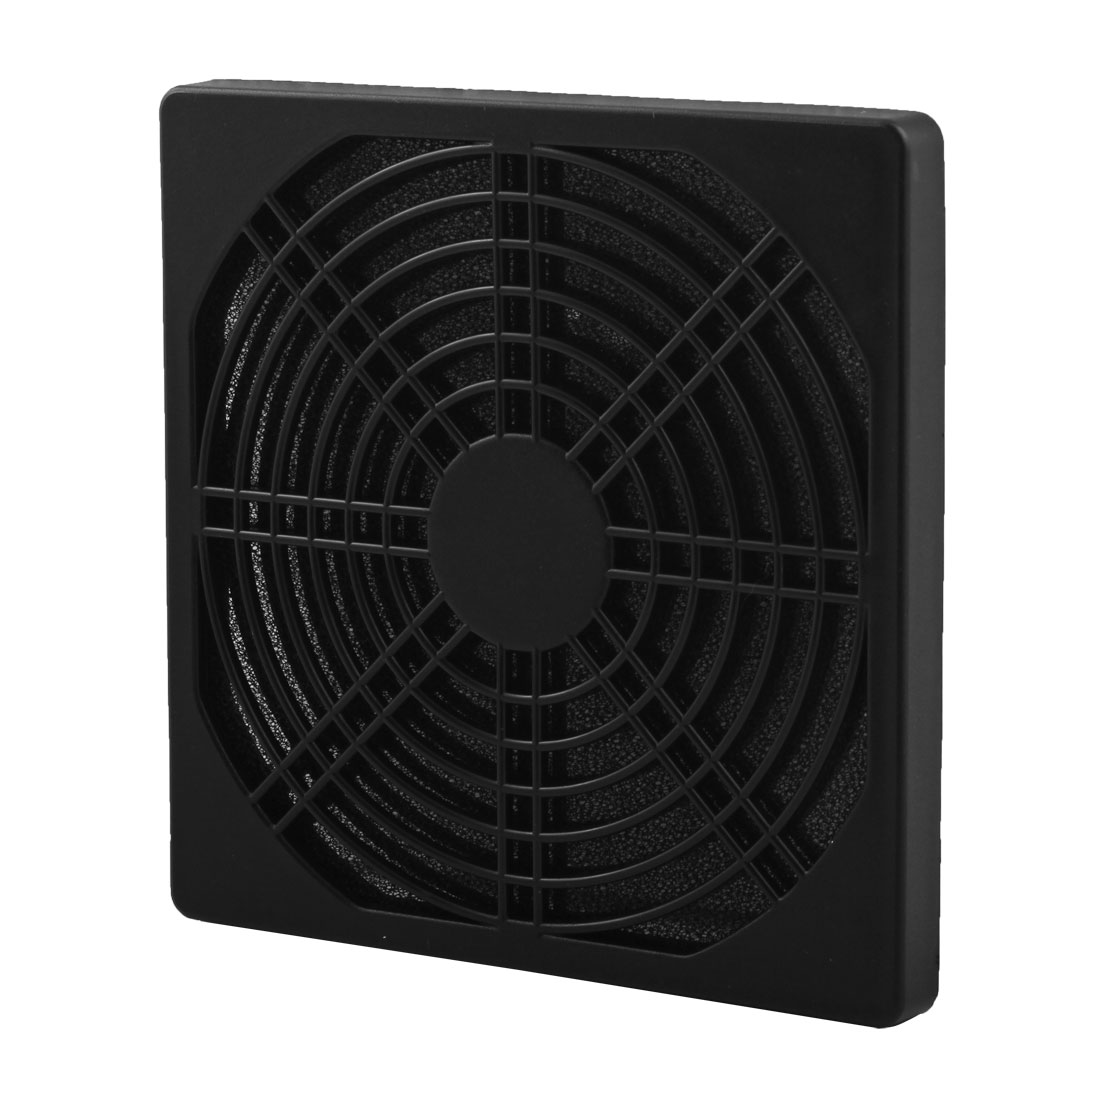 120mm x 120mm Plastic PC Computer Dustproof Case Fan Dust Filter Black